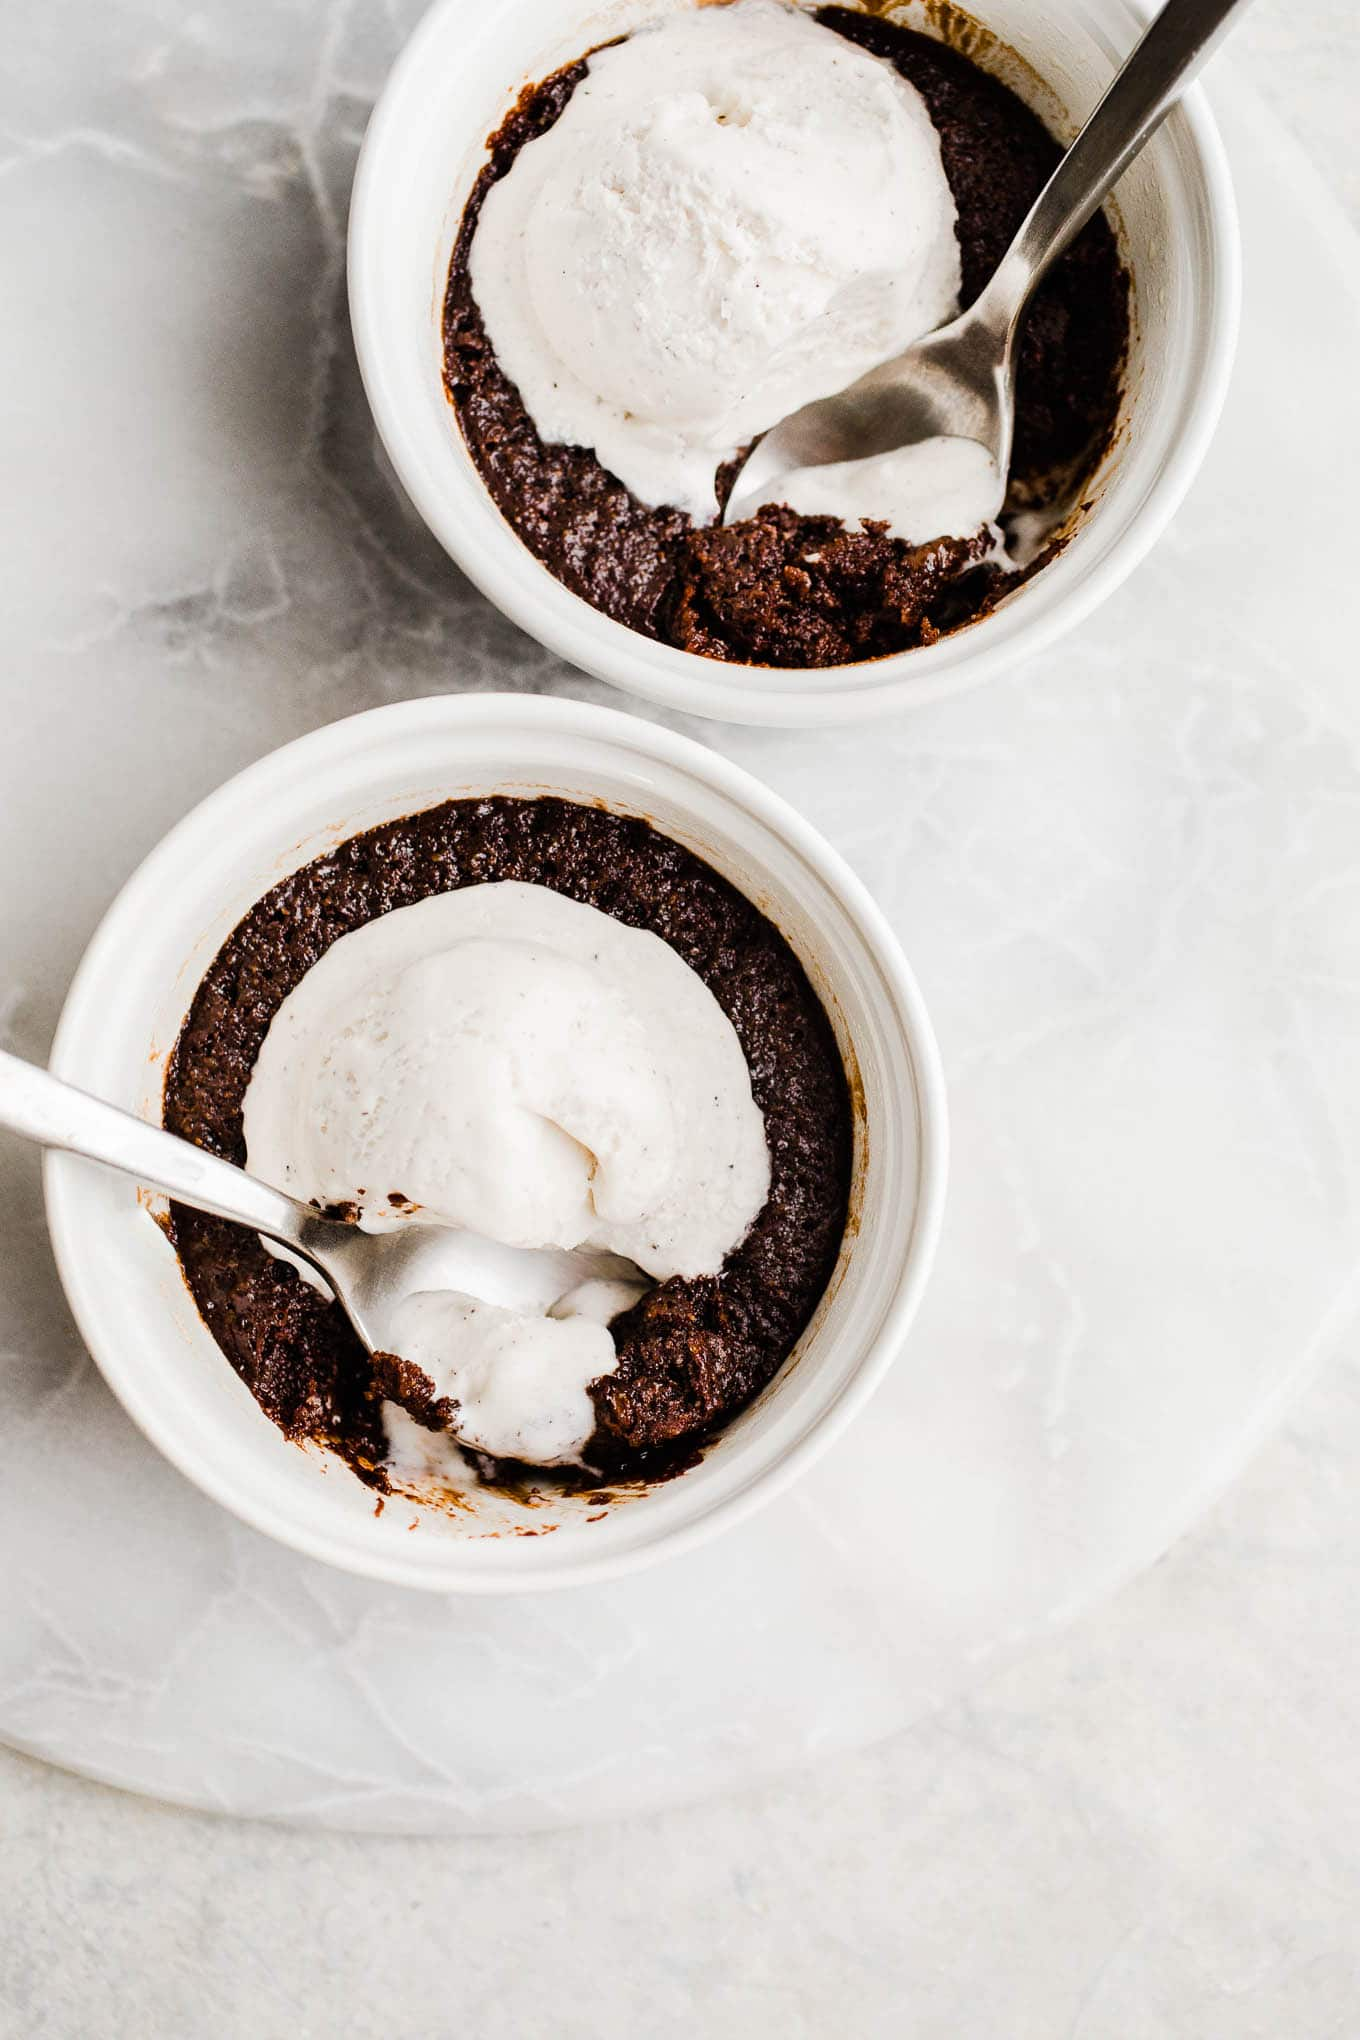 chocolate cakes with melting ice cream in ramekins